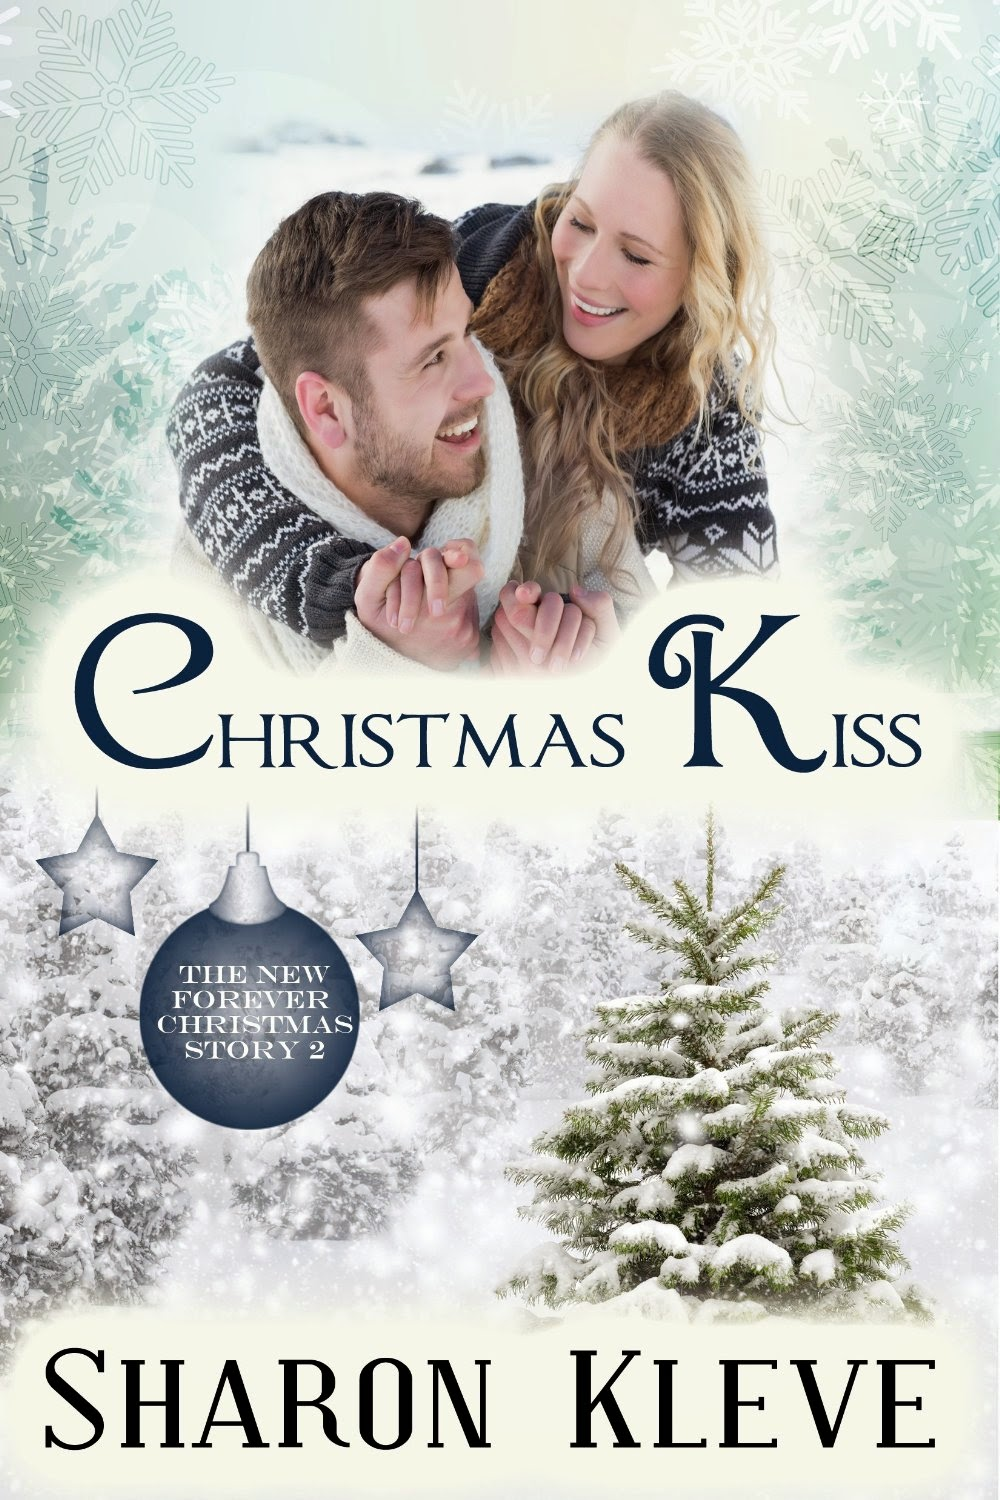 http://www.amazon.com/Christmas-Kiss-Forever-Book-ebook/dp/B00P8BNG5C/ref=sr_1_9?s=books&ie=UTF8&qid=1421614182&sr=1-9&keywords=sharon+kleve